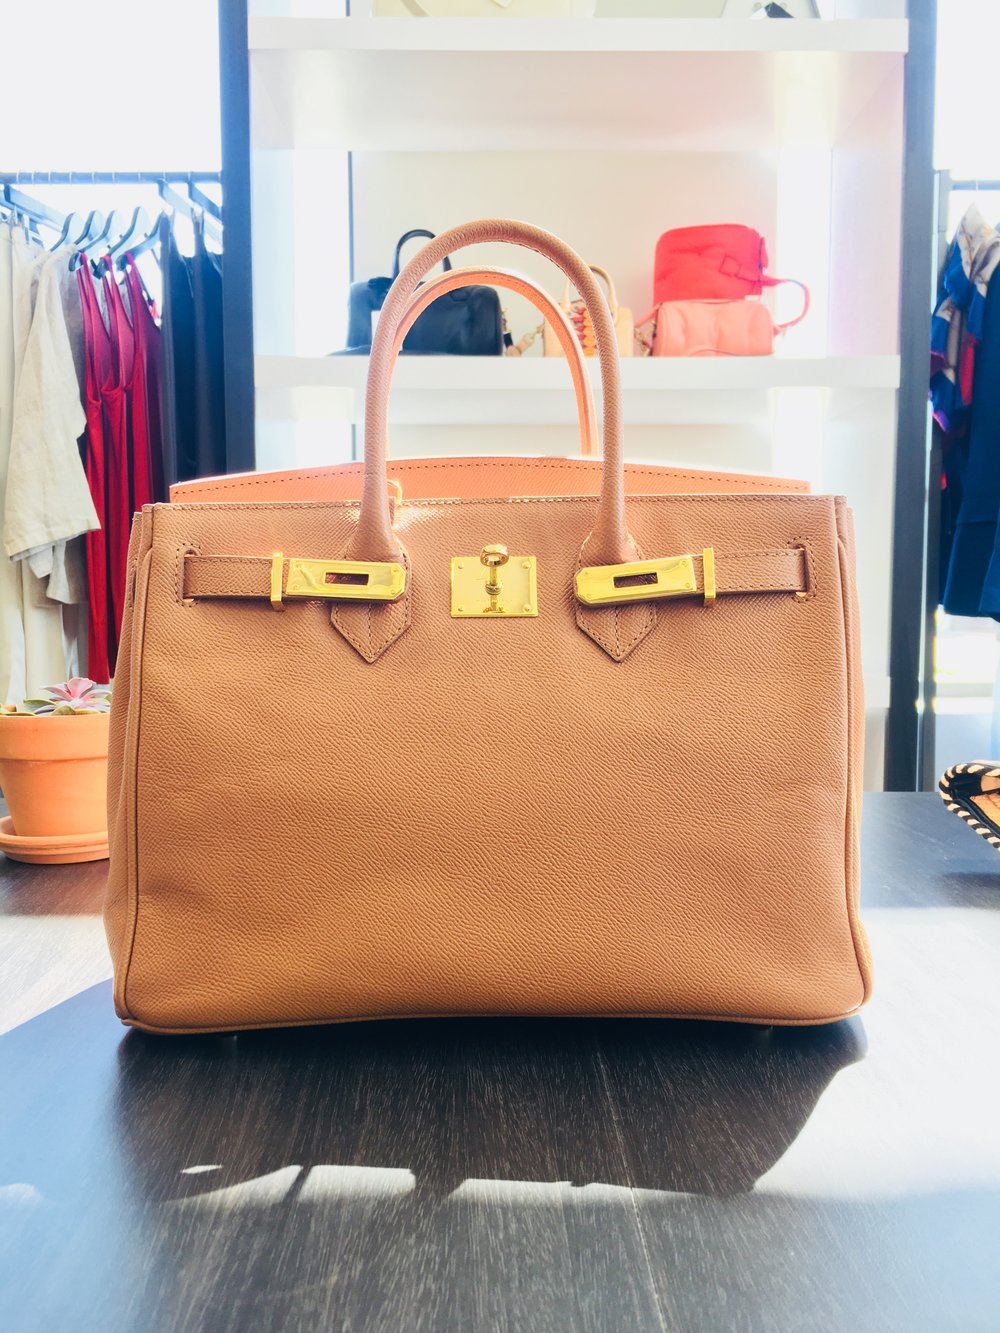 Caty 30cm in Toffee Palmellato Leather -$750